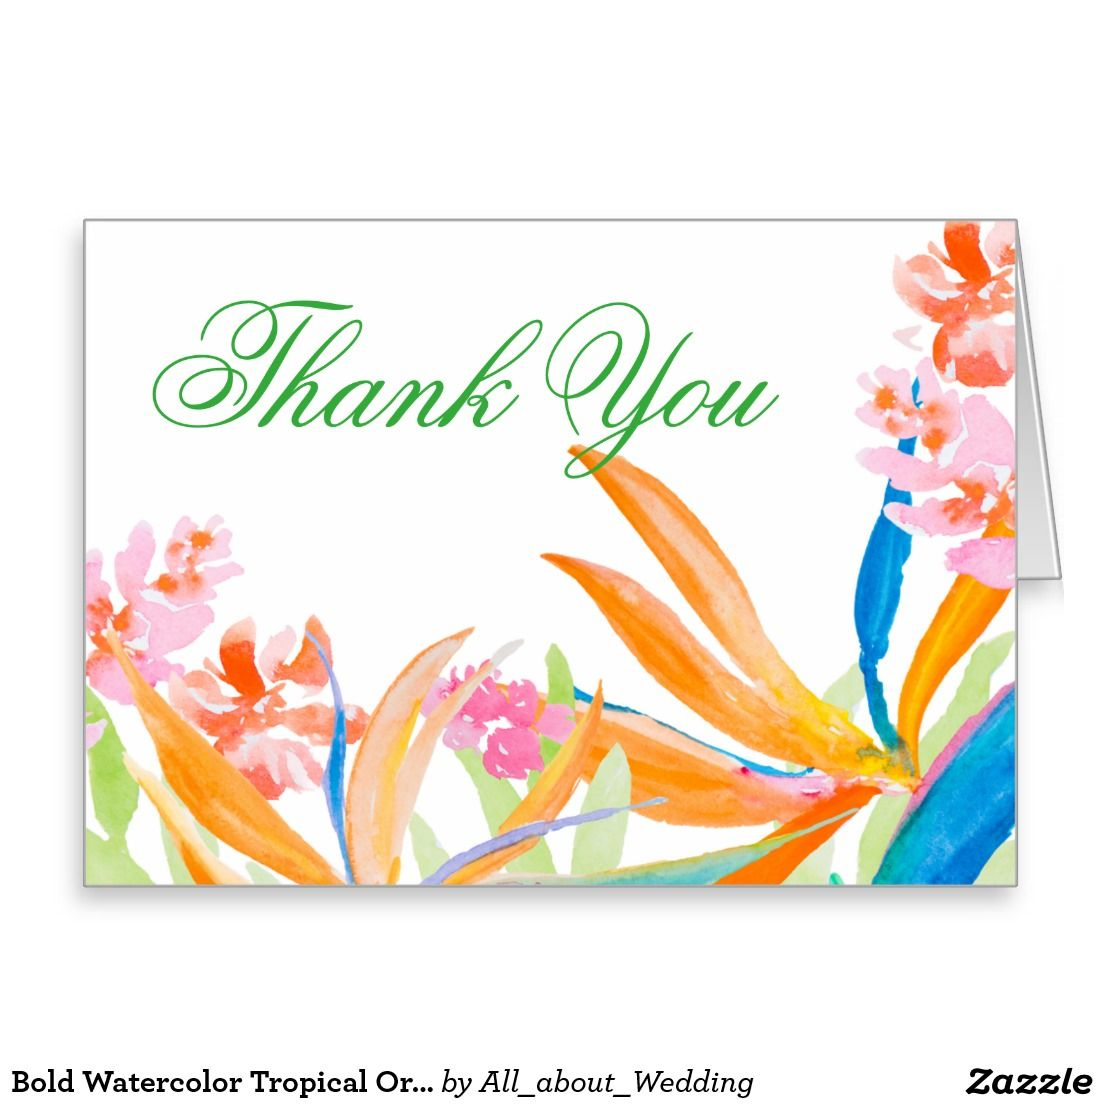 Bold Watercolor Tropical Ornage Flower Thank You Card  DIY Wedding